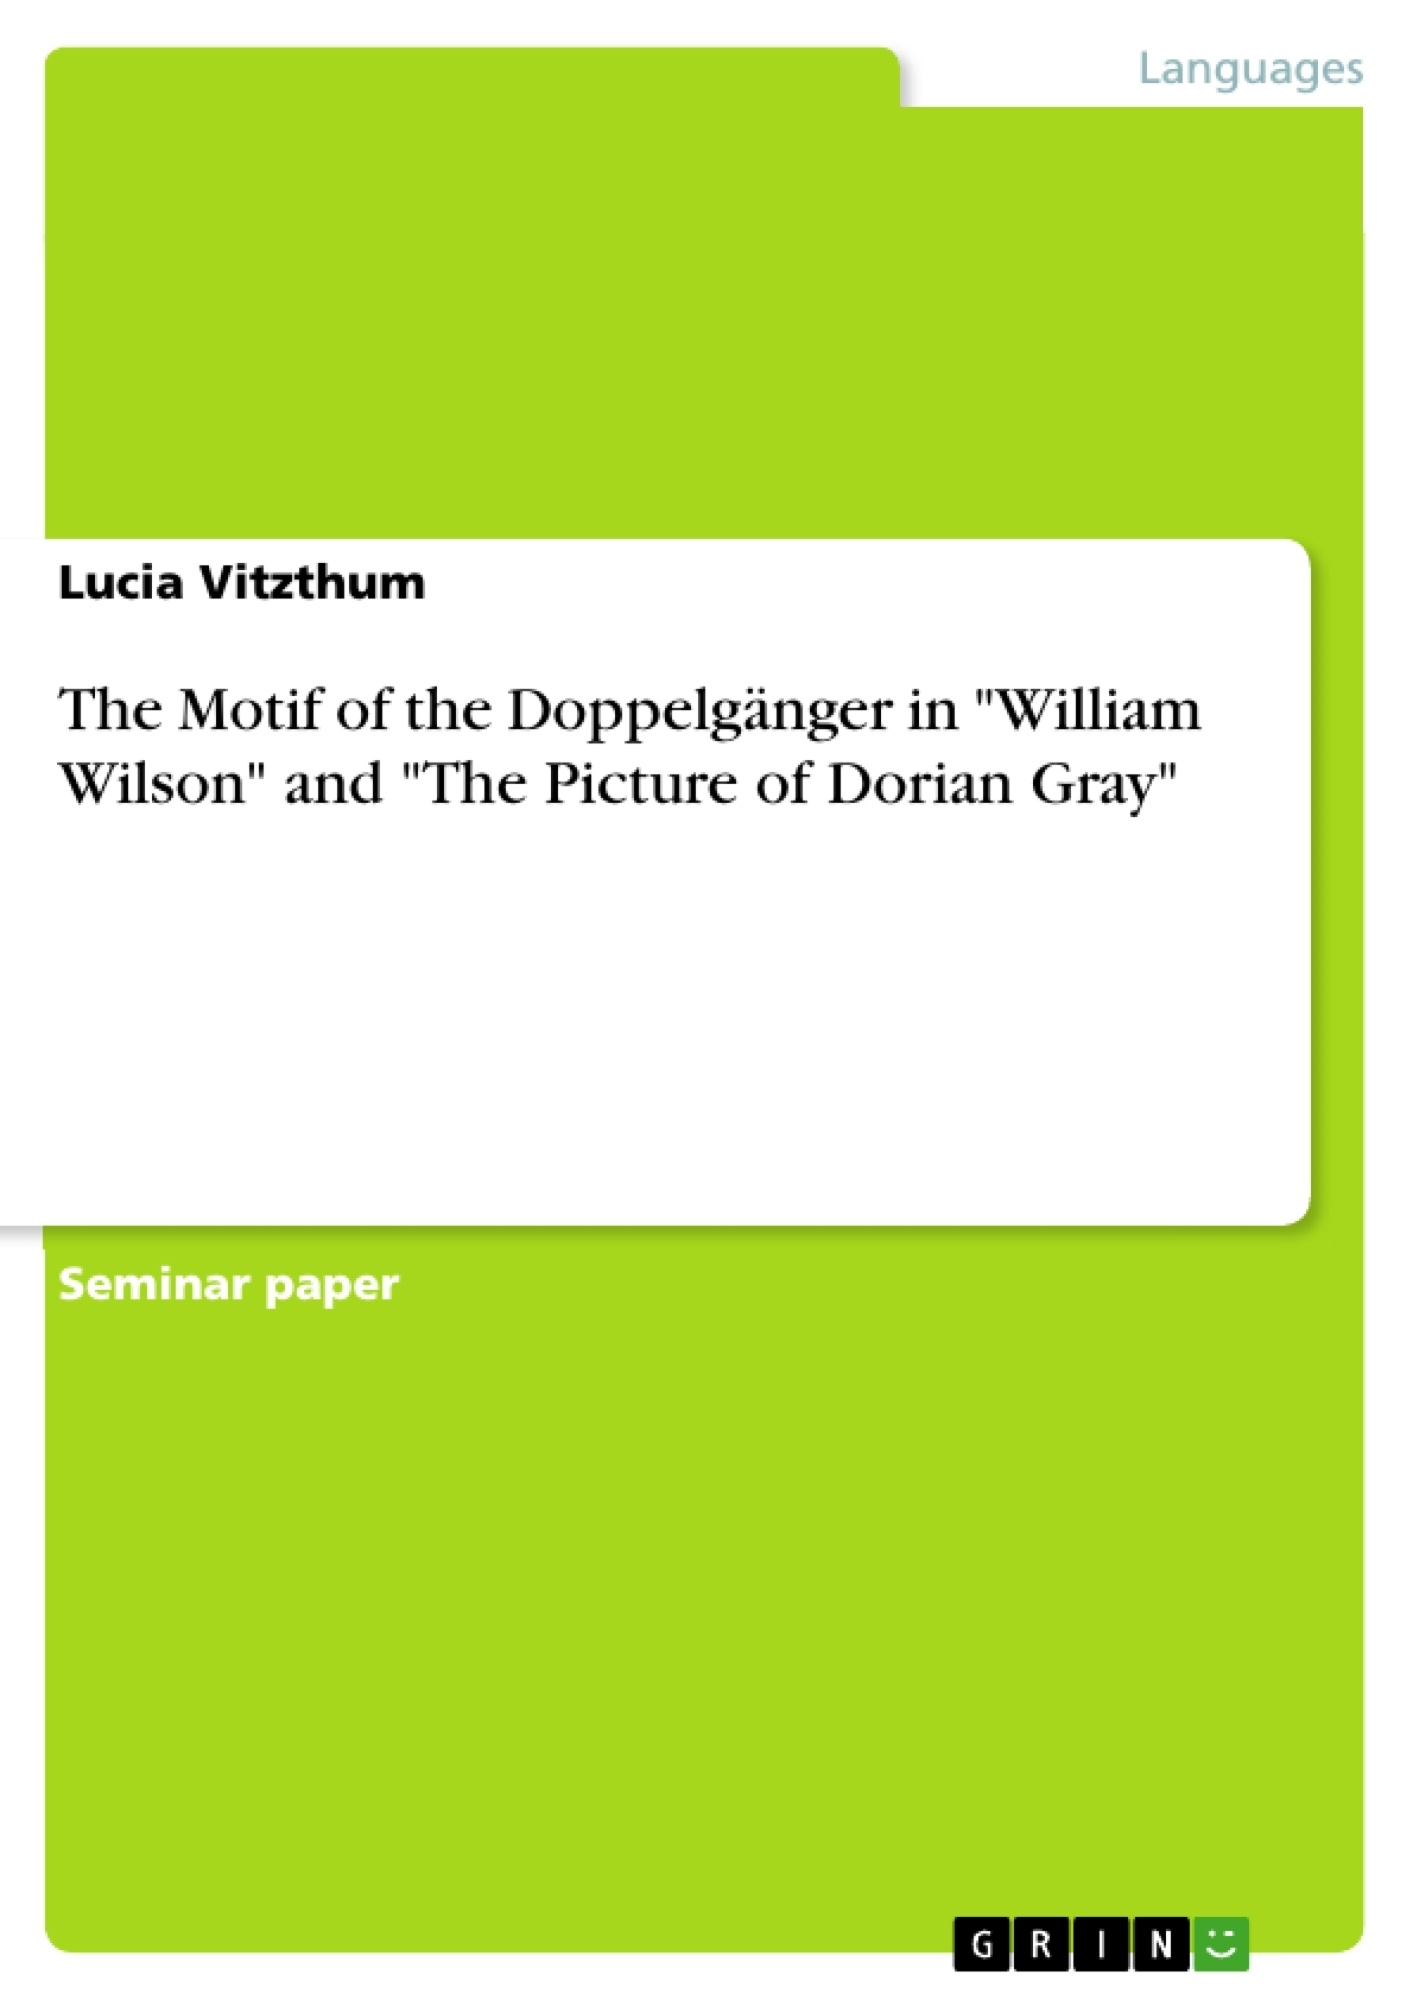 """Title: The Motif of the Doppelgänger in """"William Wilson"""" and """"The Picture of Dorian Gray"""""""